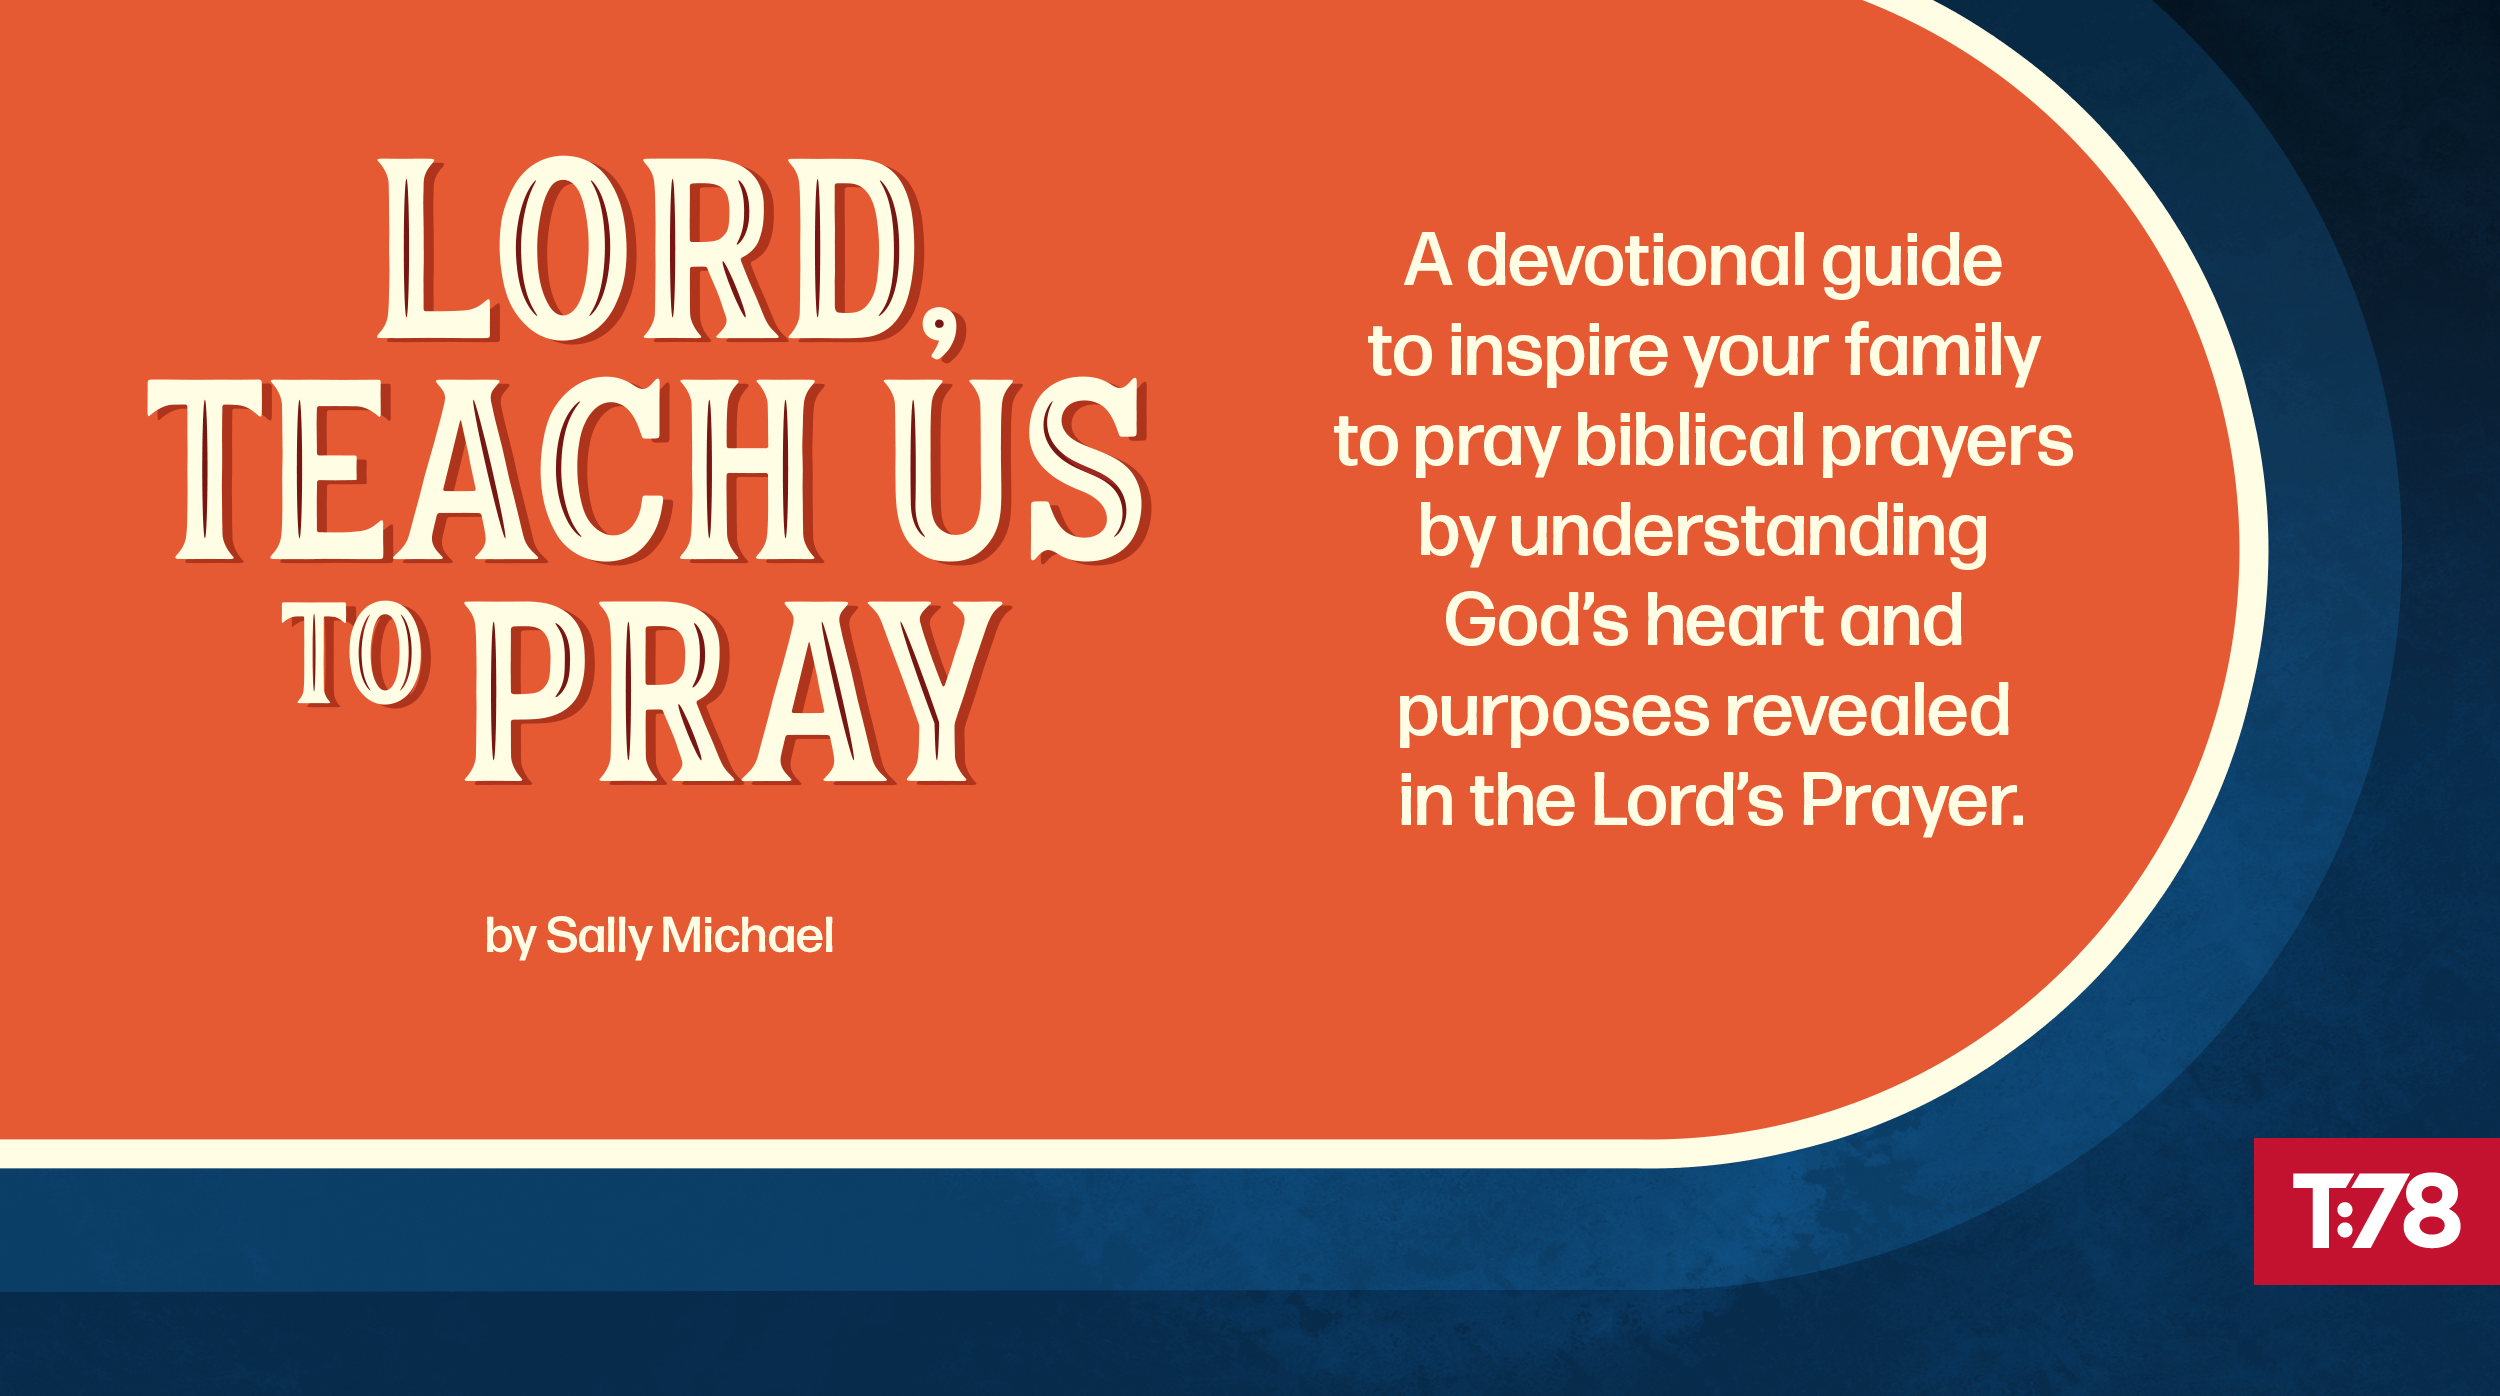 Newly Revised Devotional Inspires Biblical Prayer